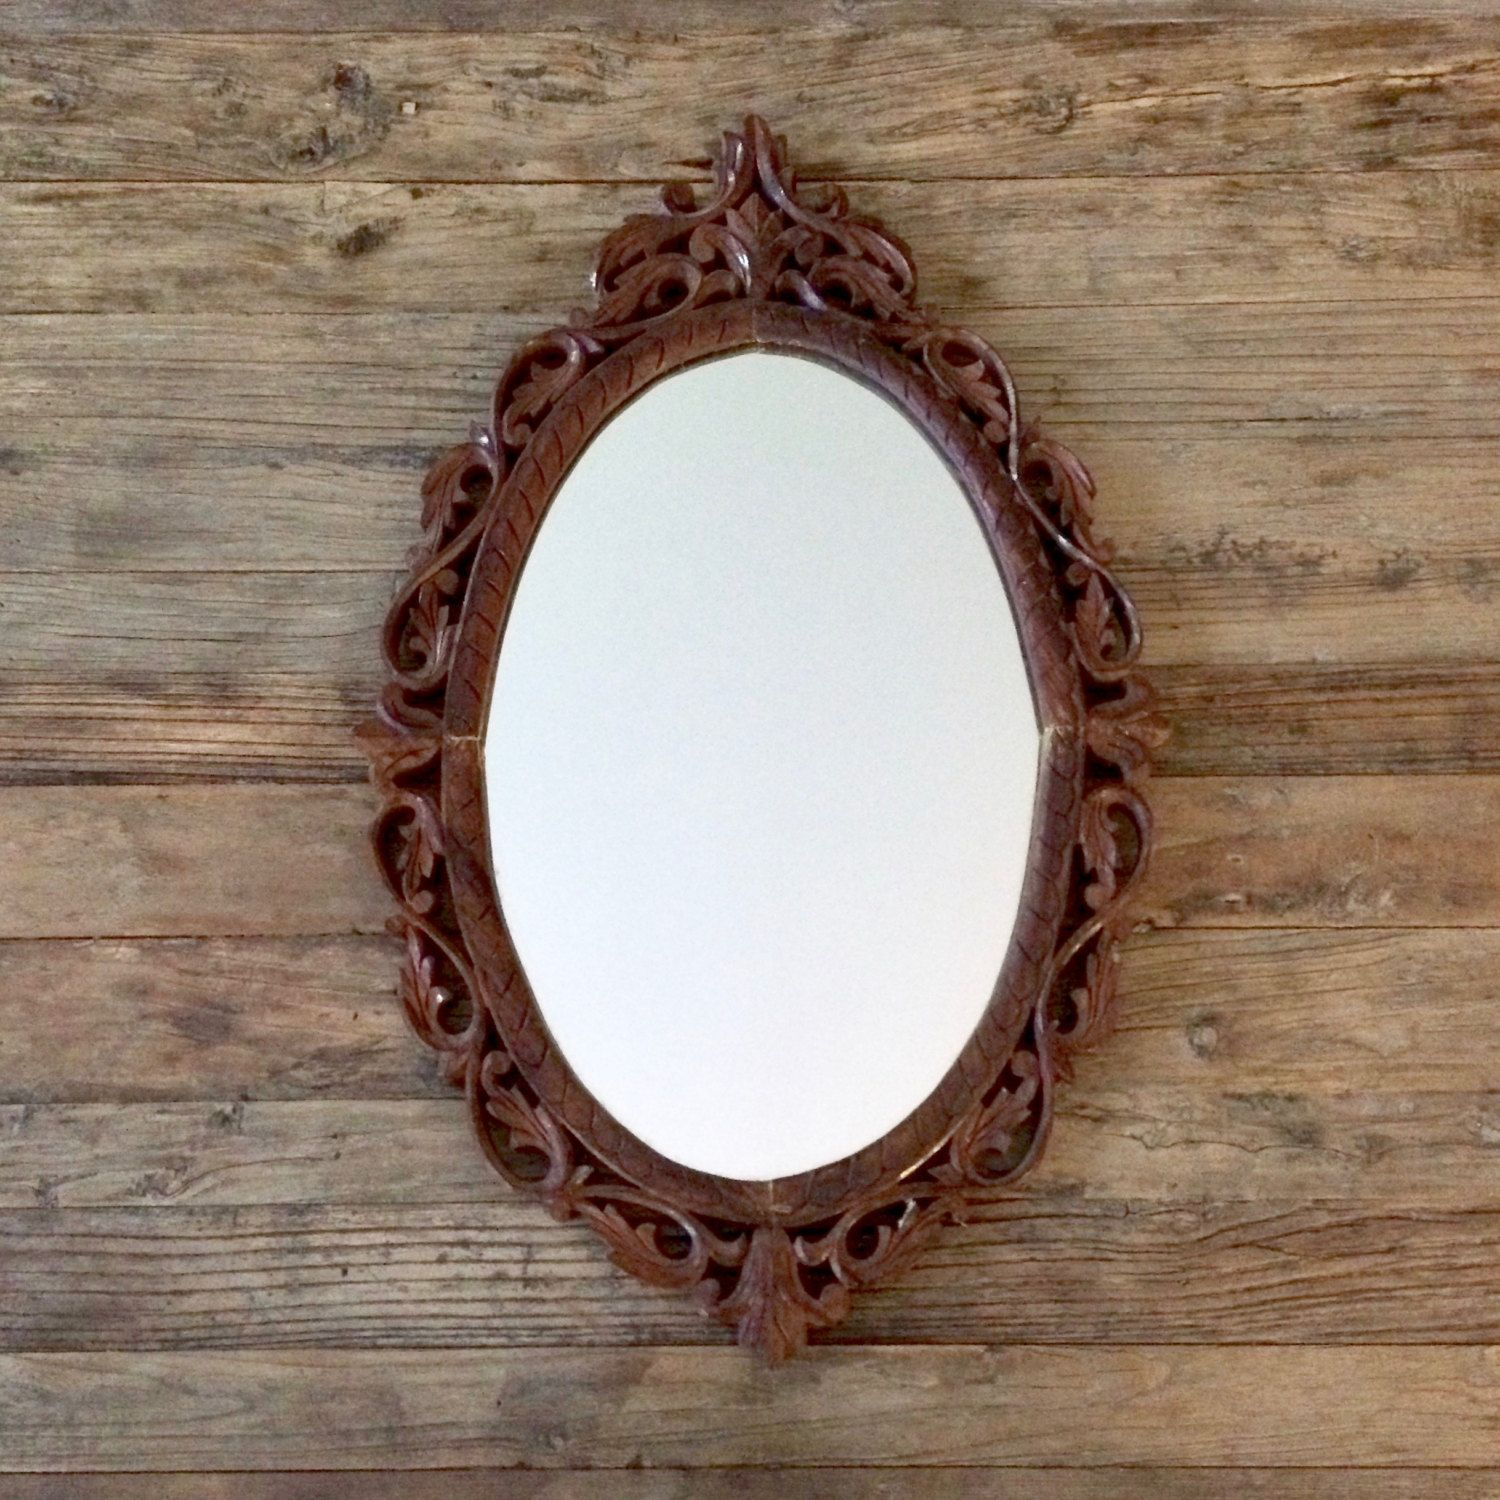 Carved Wooden Oval Mirror / India wooden mirror | Oval ...